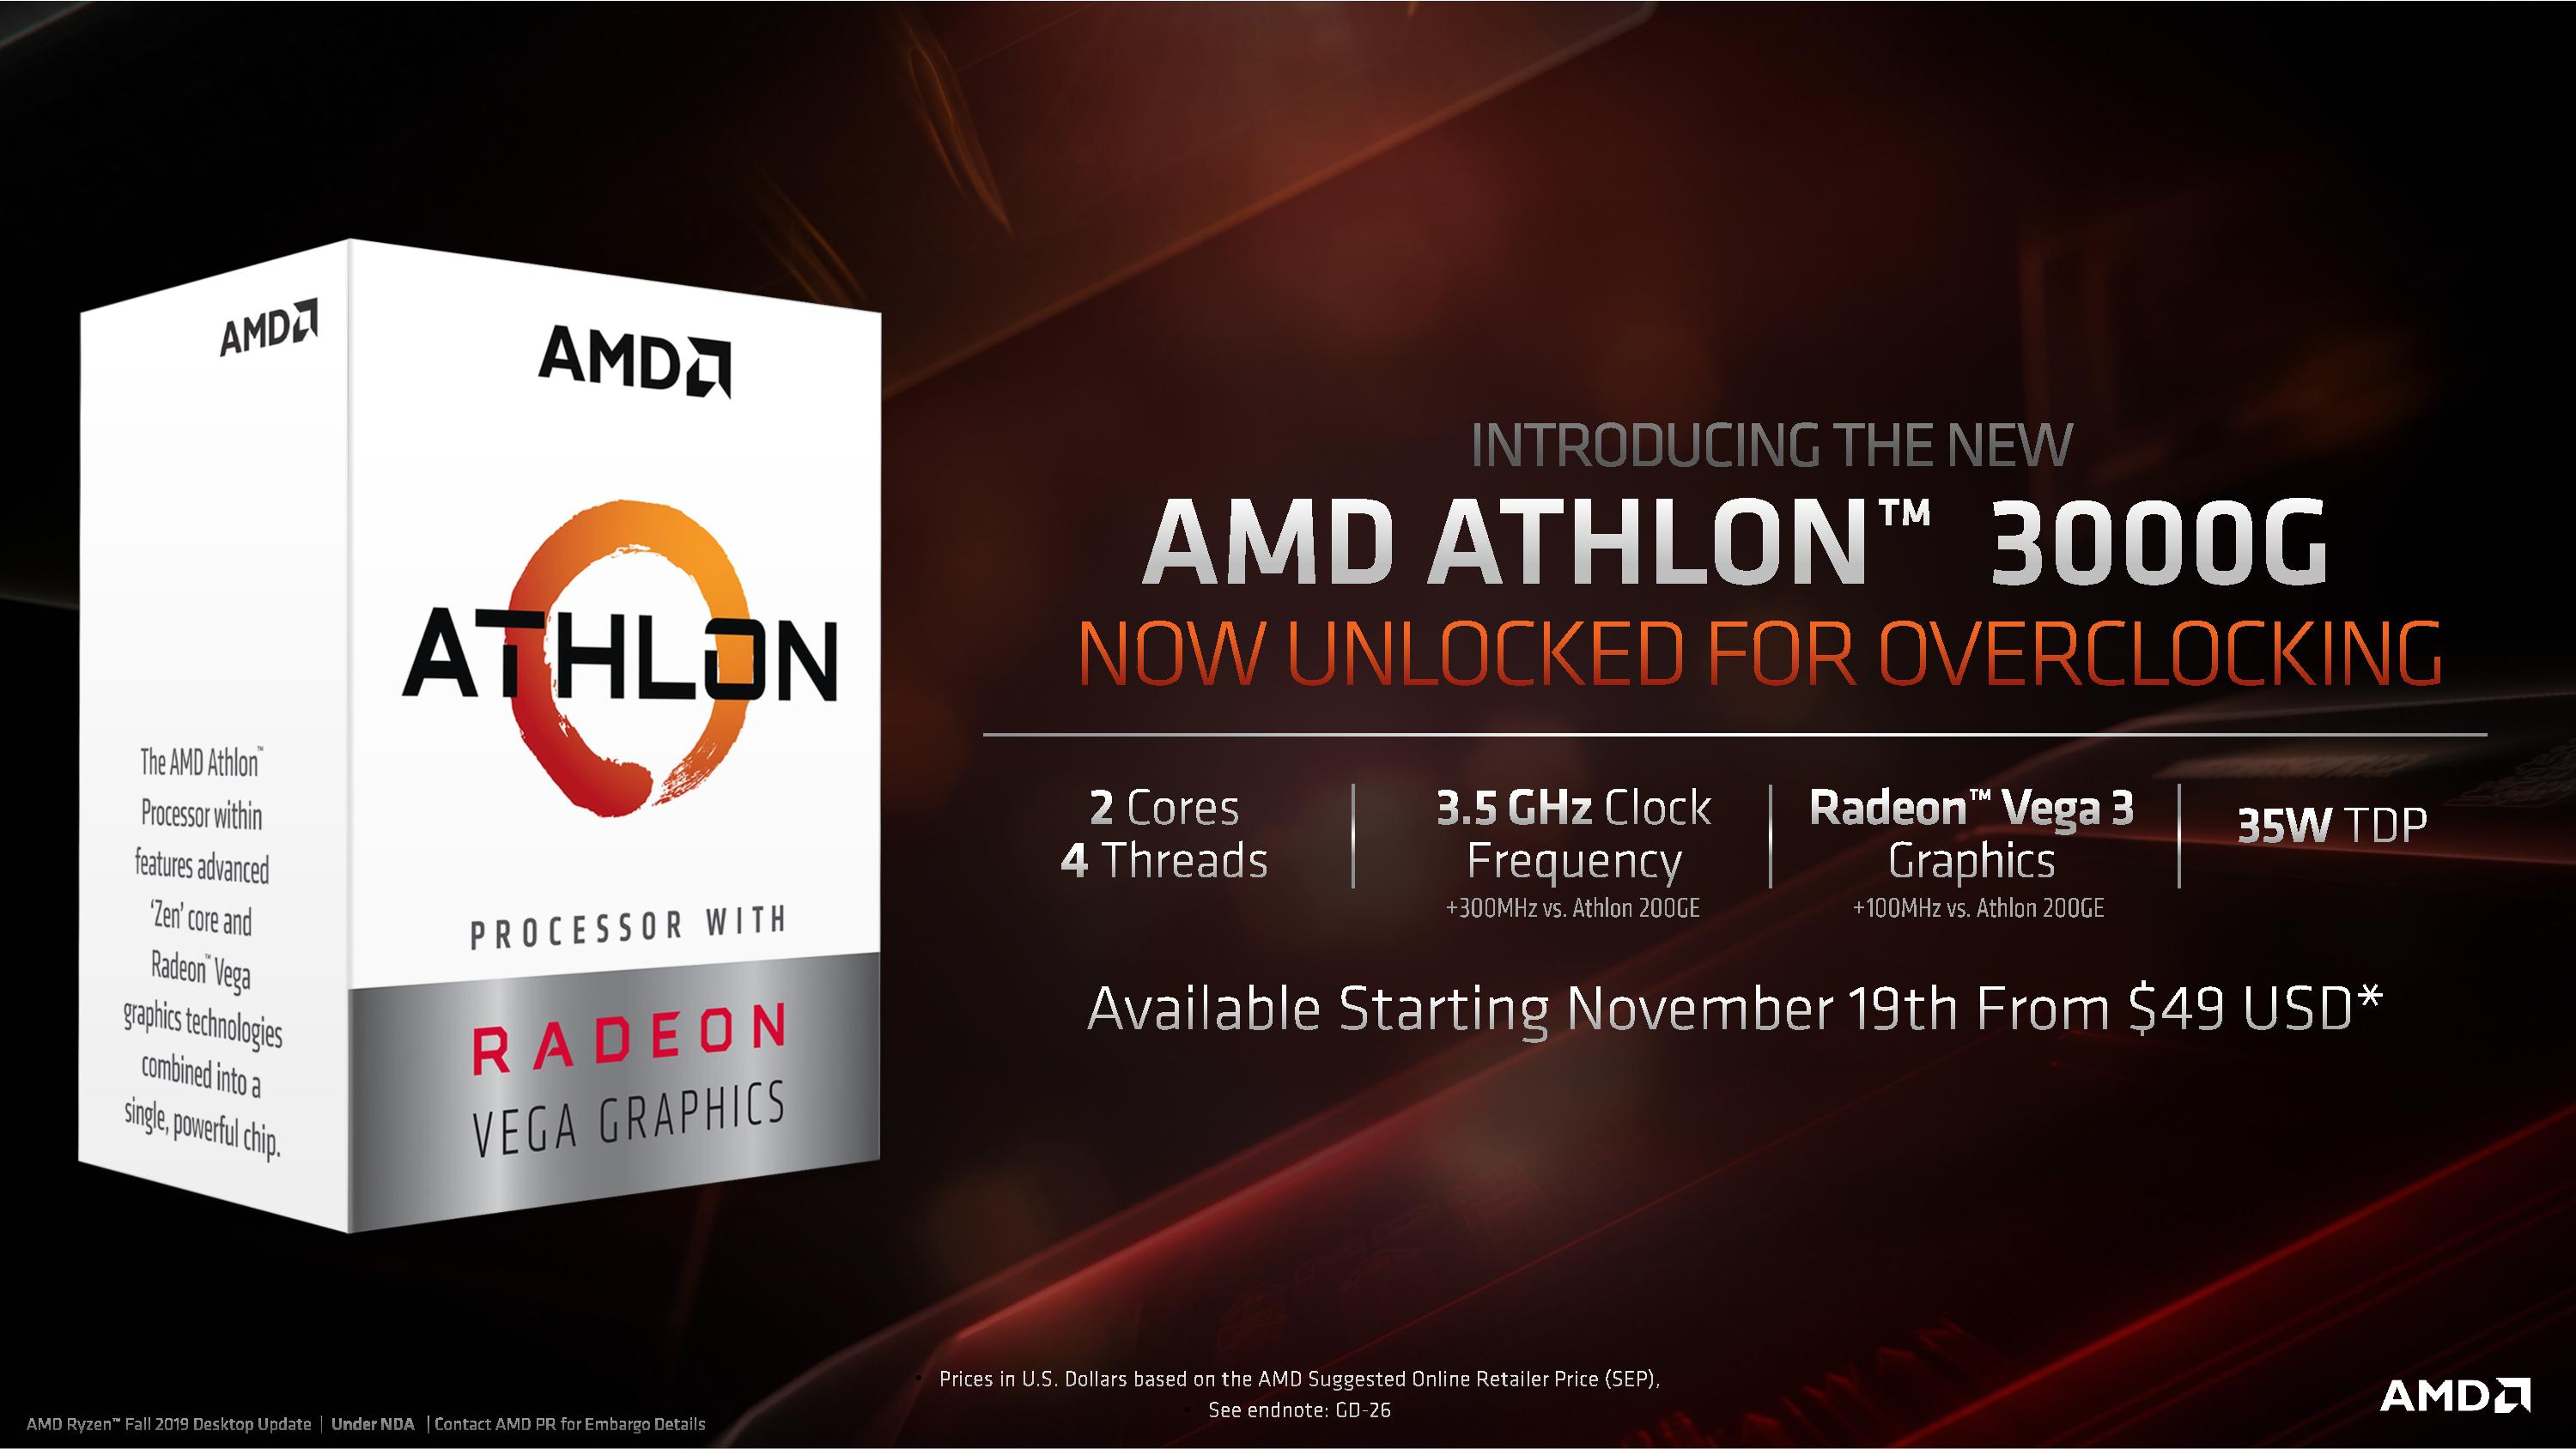 Amd Athlon 3000g Aligning Names And Numbers At 49 Amd Q4 16 Core Ryzen 9 3950x Threadripper Up To 32 Core 3970x Coming November 25th